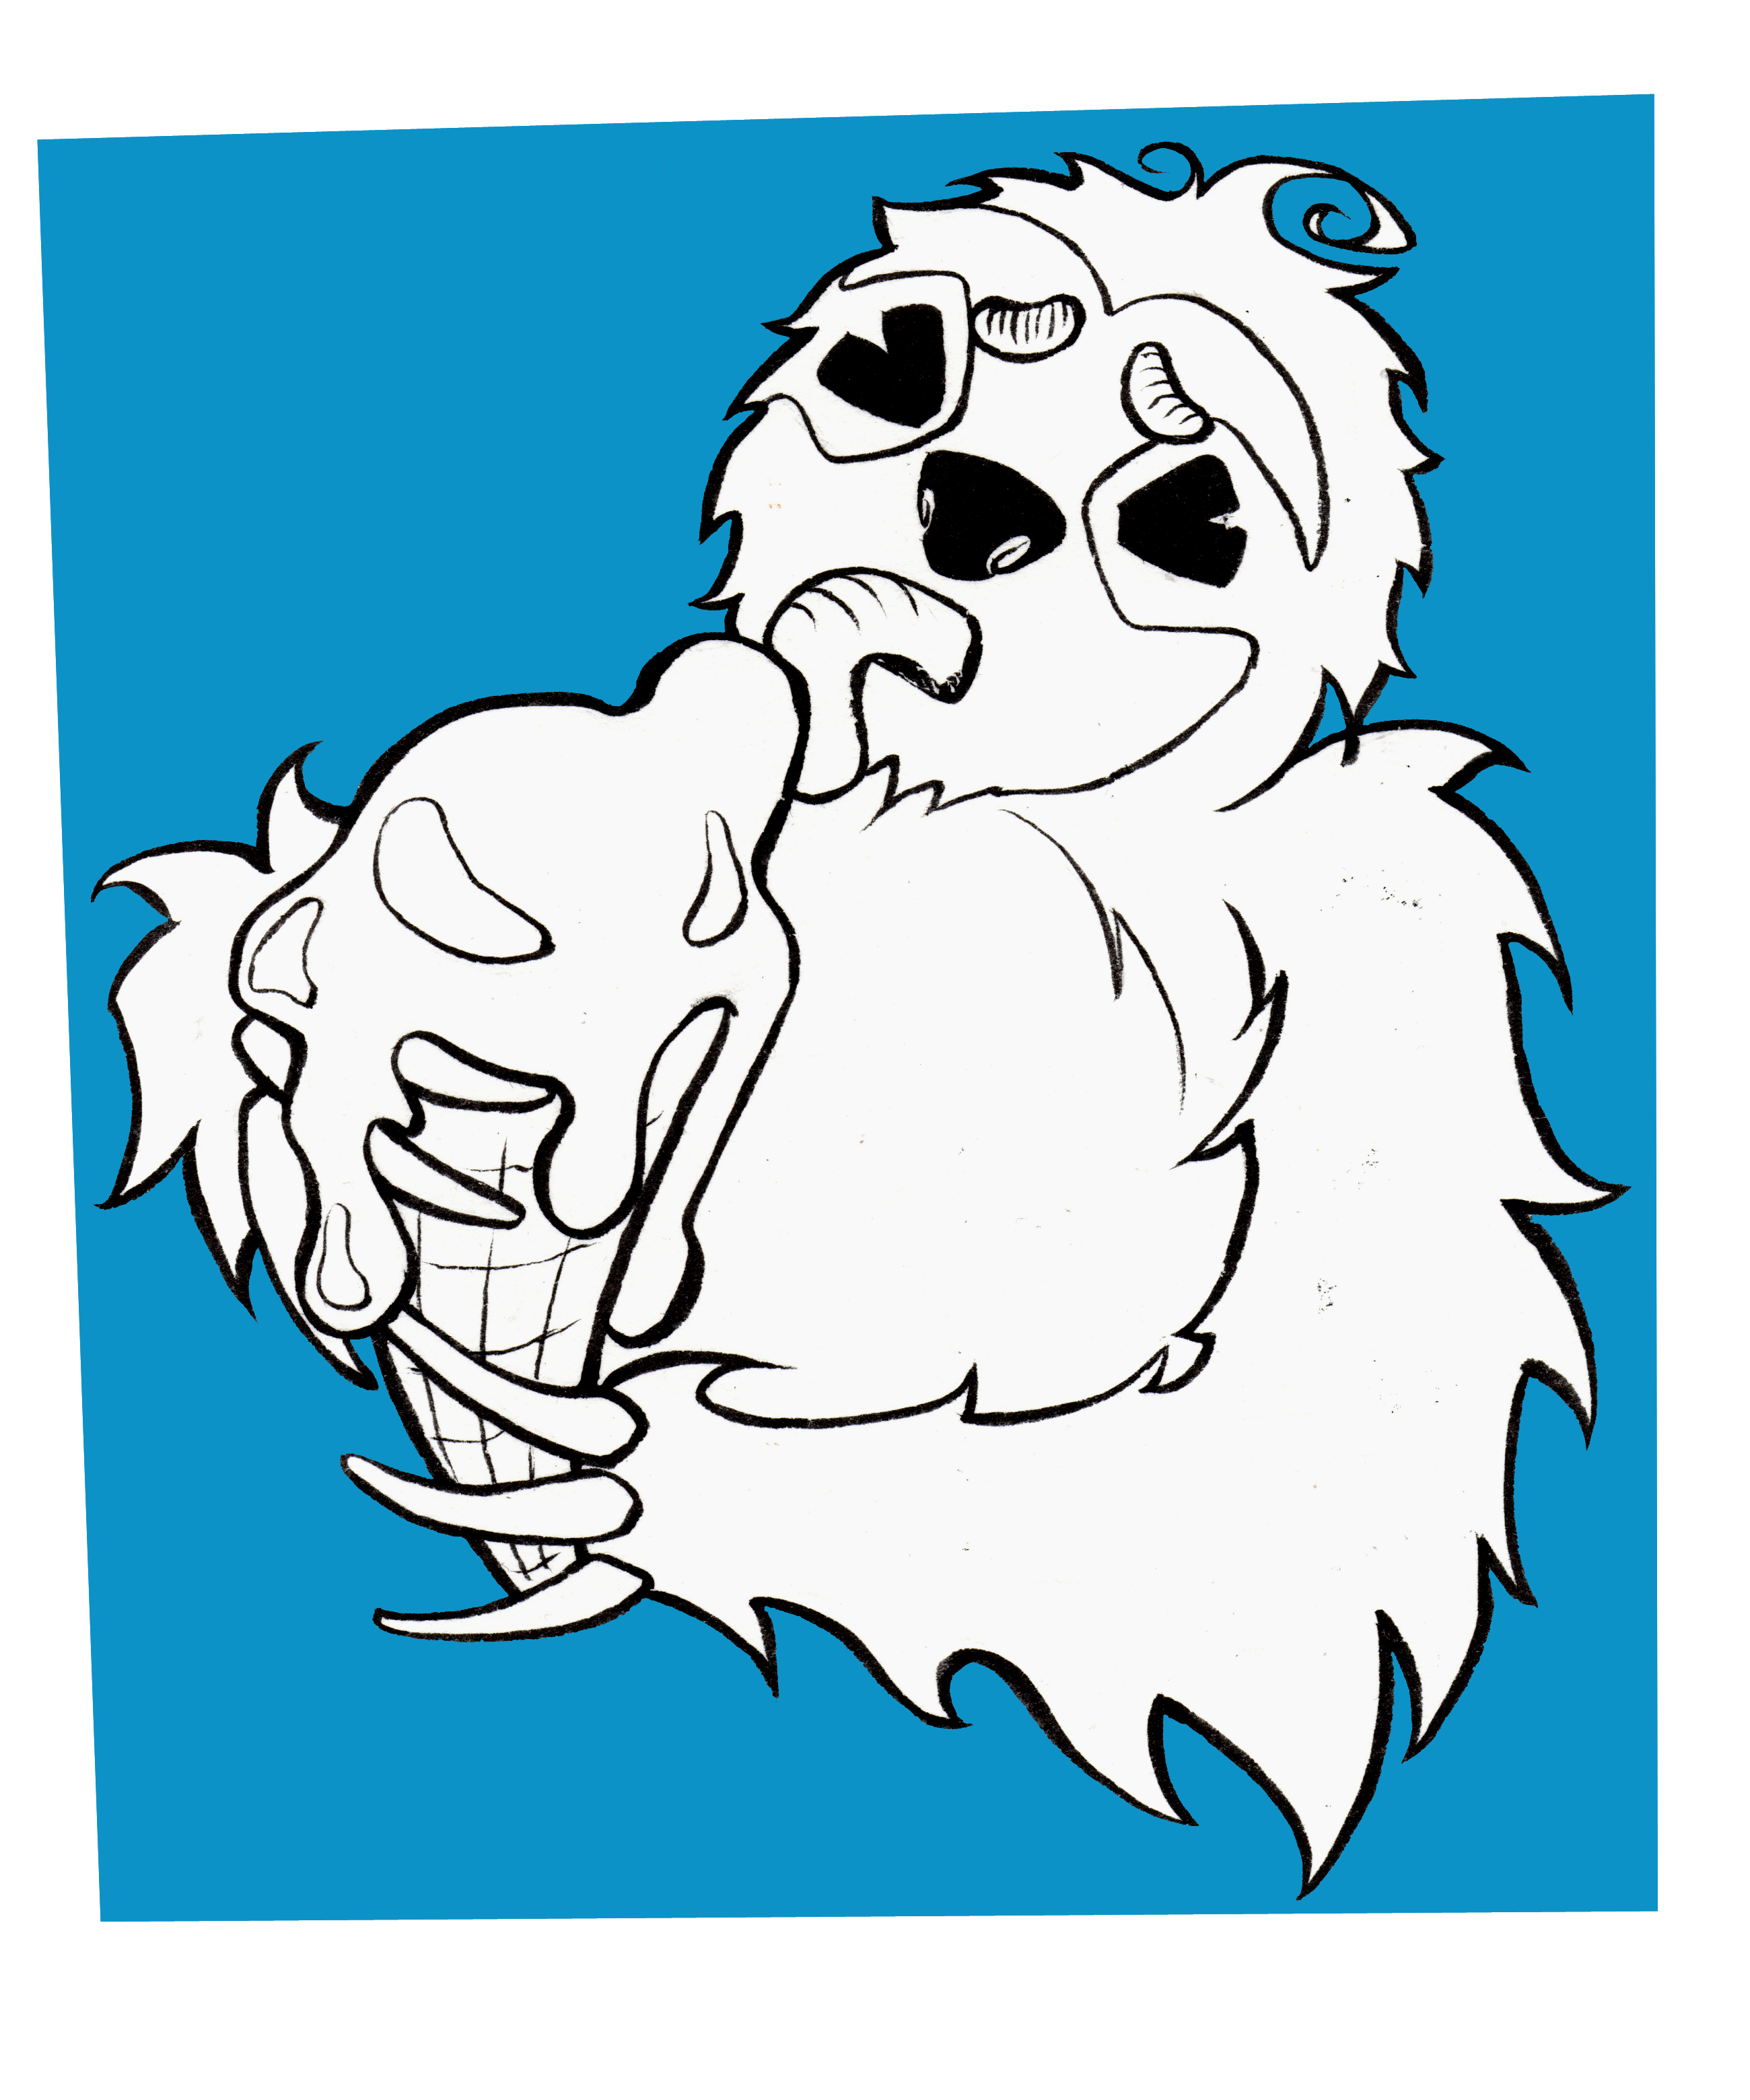 That Sure Is Not Easy Fom Him 3 Cute Sloth Eating An Ice Cream